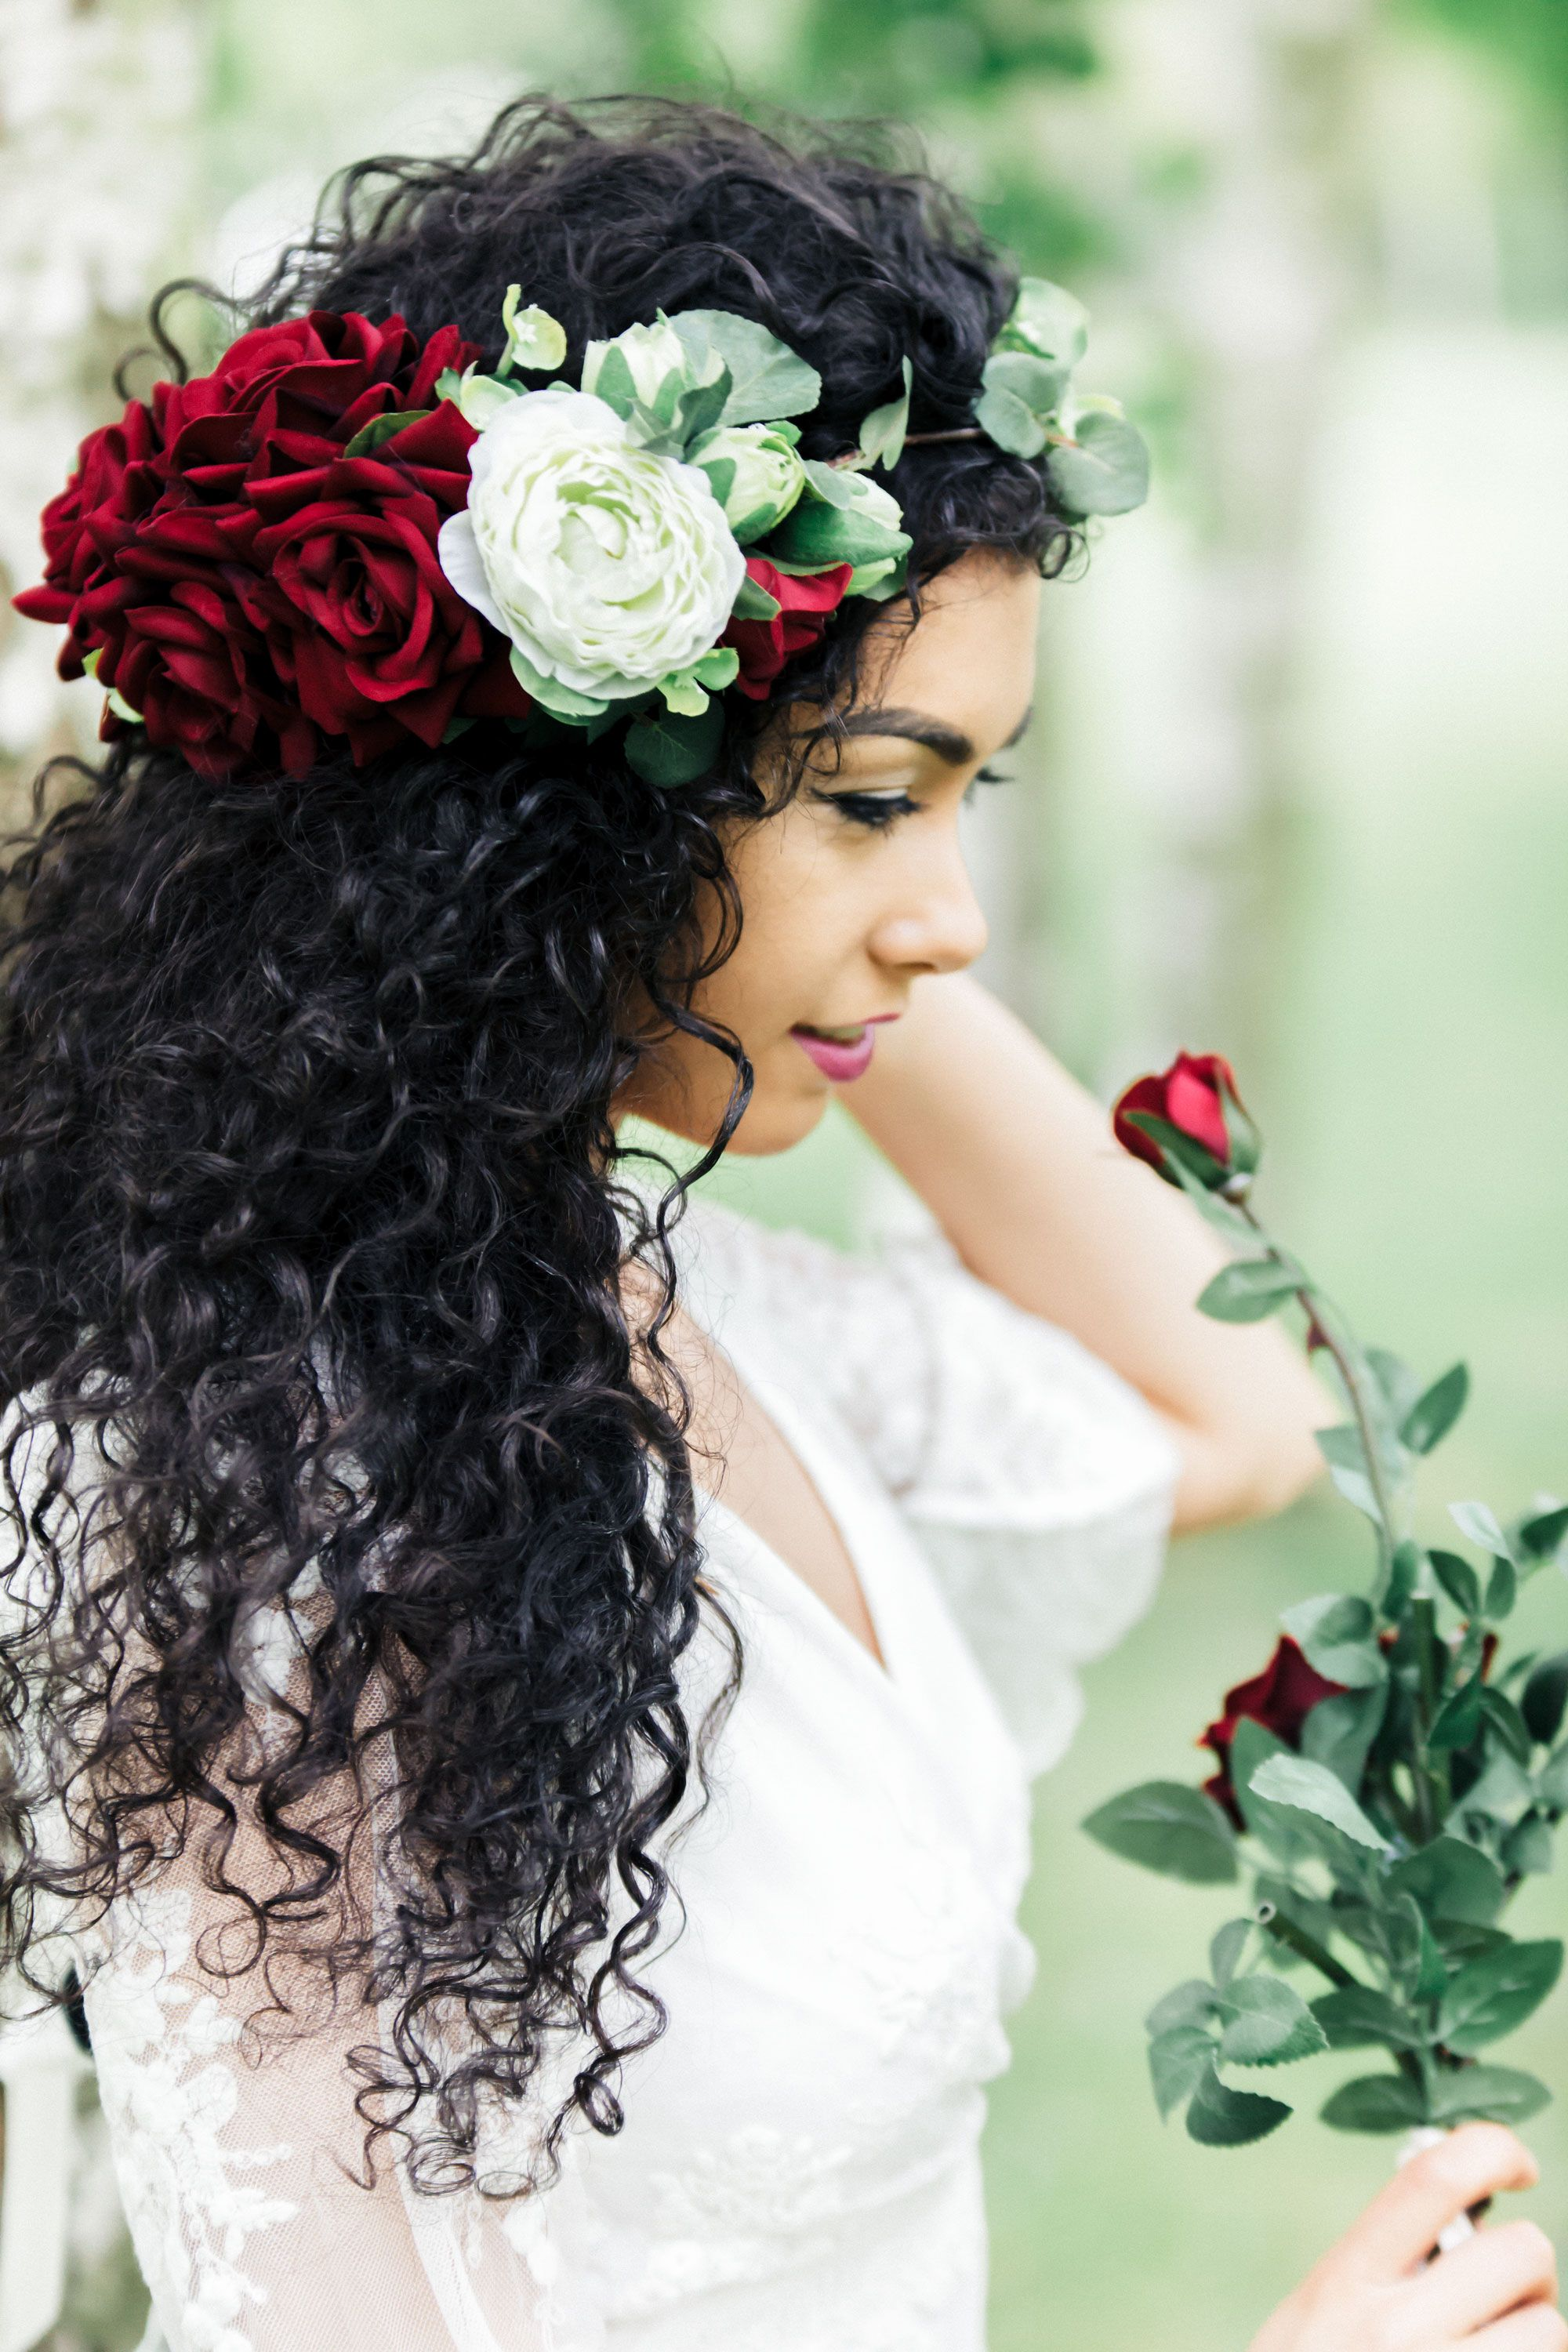 Beautiful red and ivory rose flower crown wrapped with vine leaves beautiful red and ivory rose flower crown wrapped with vine leaves by aurelia crown perfect for your boho inspired wedding photo aurelia allen photography izmirmasajfo